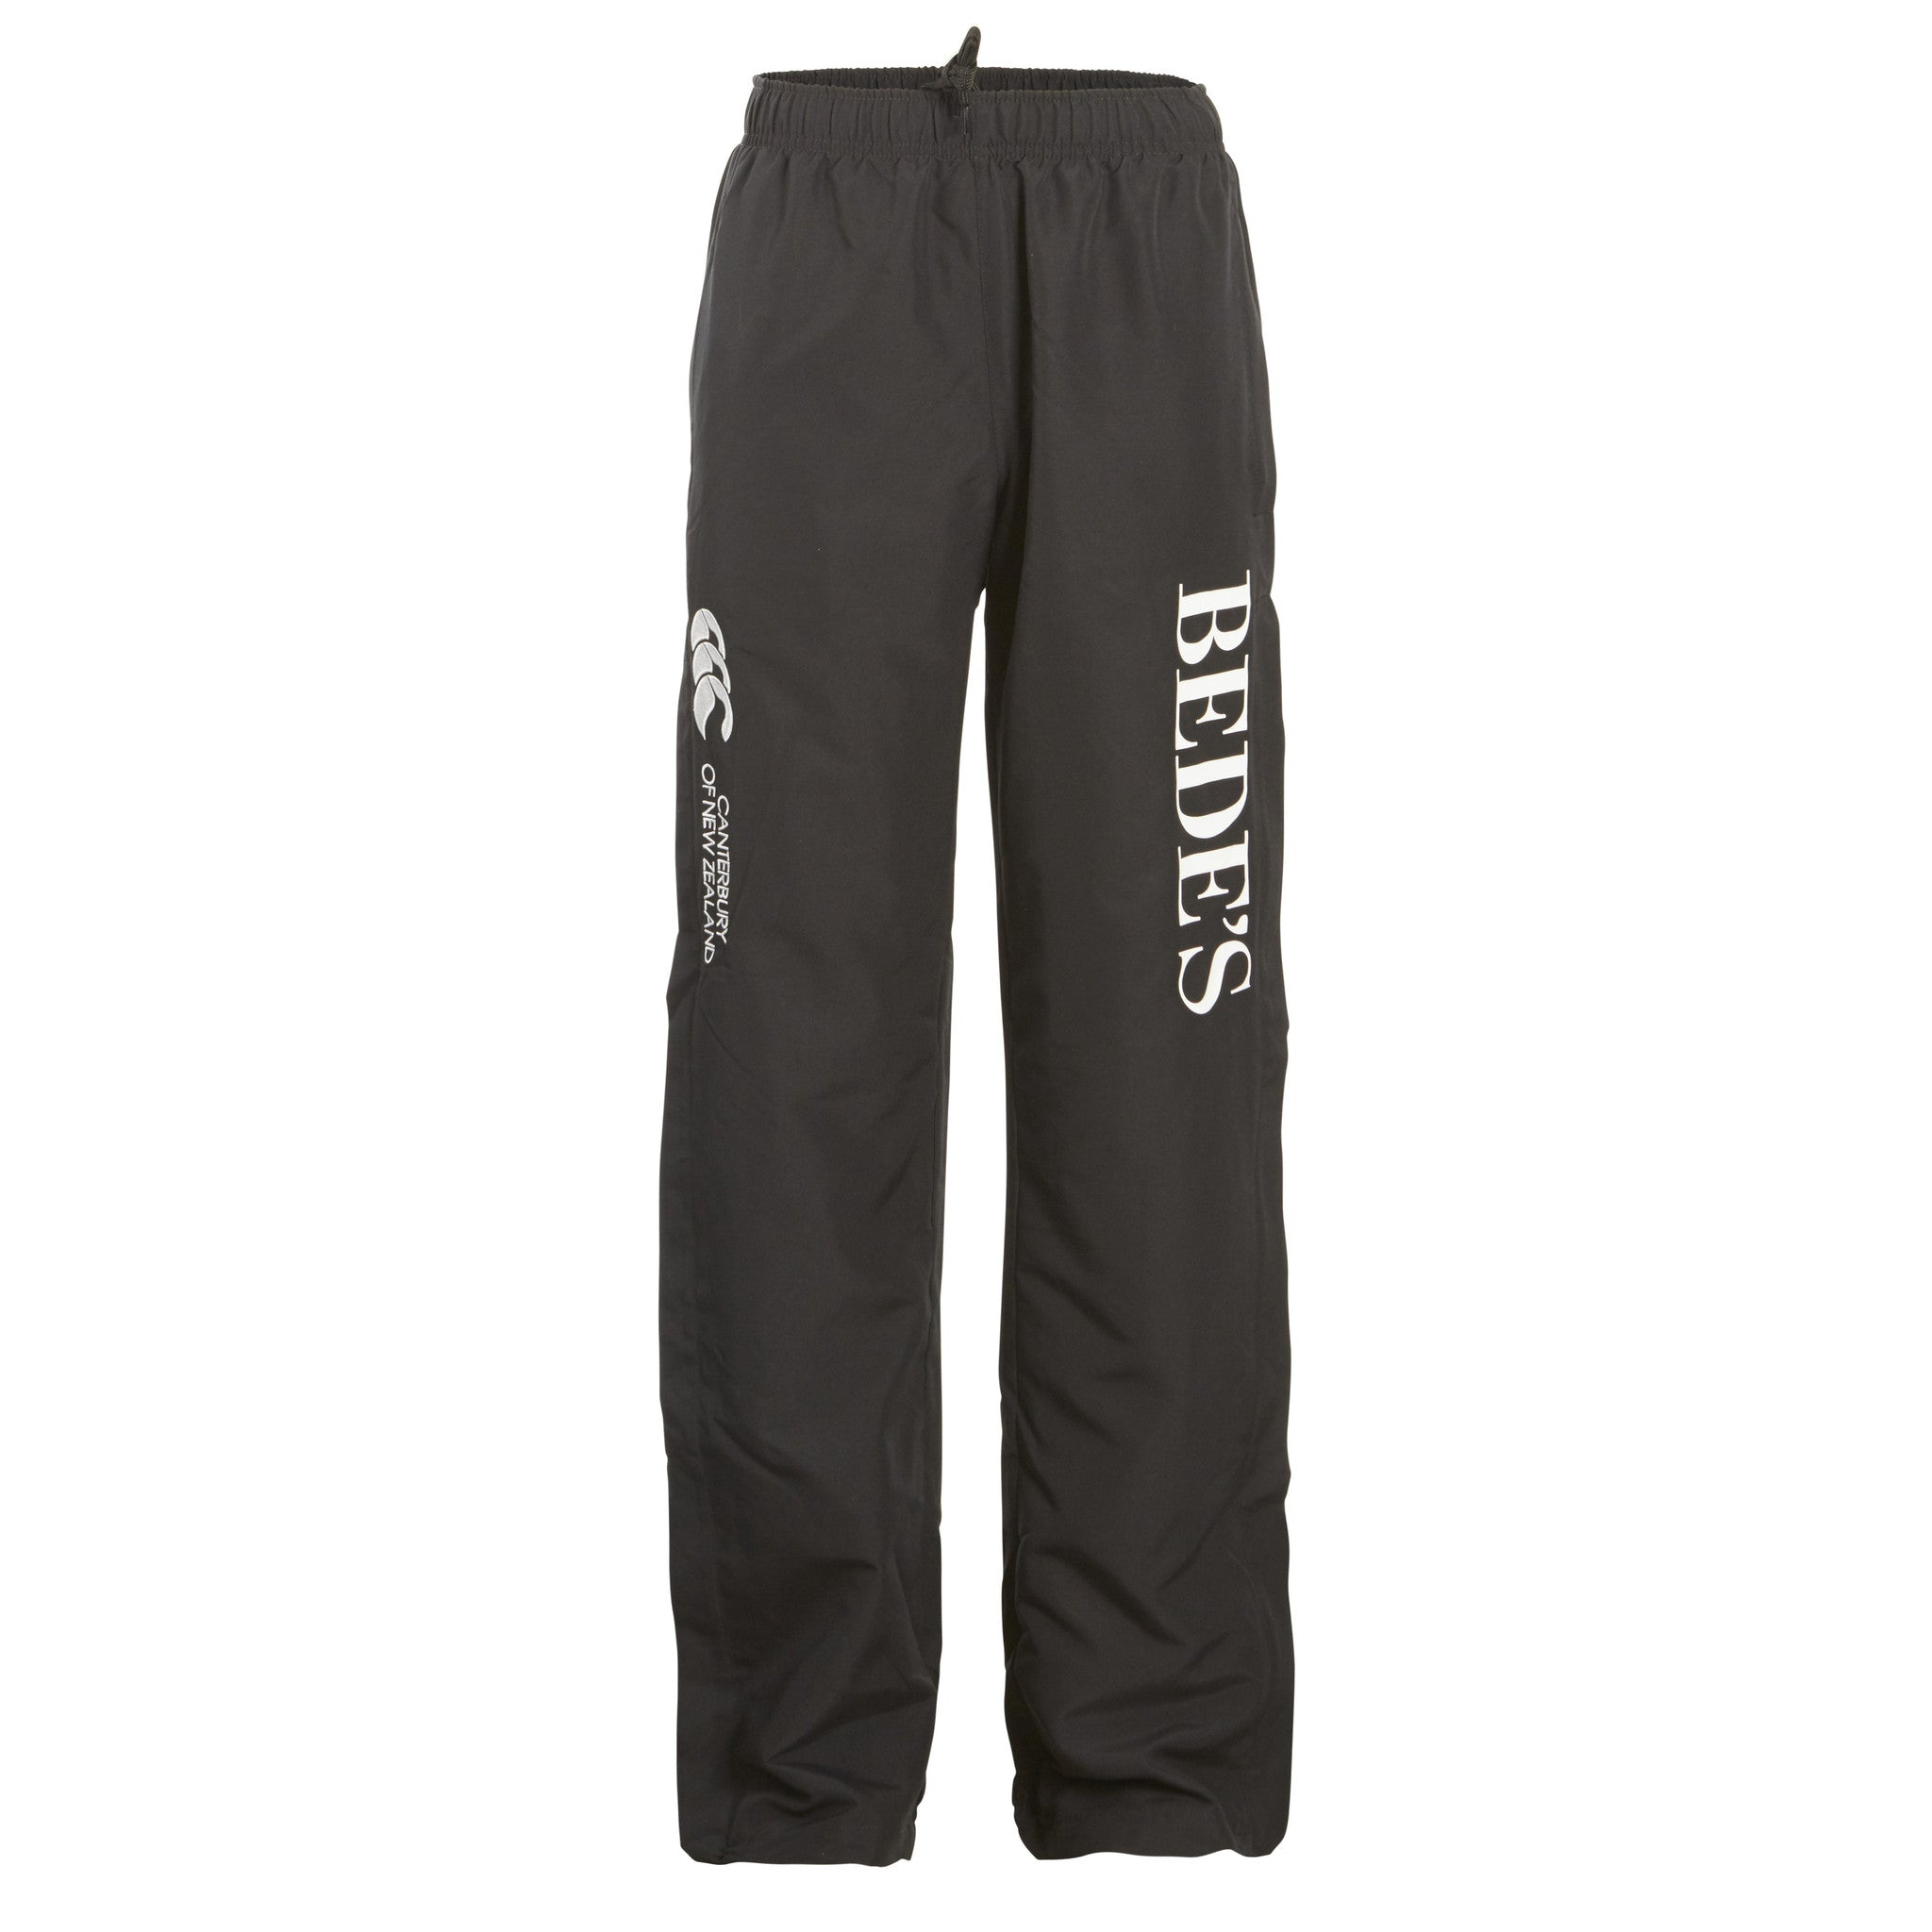 Bede's Track Pants Ladies